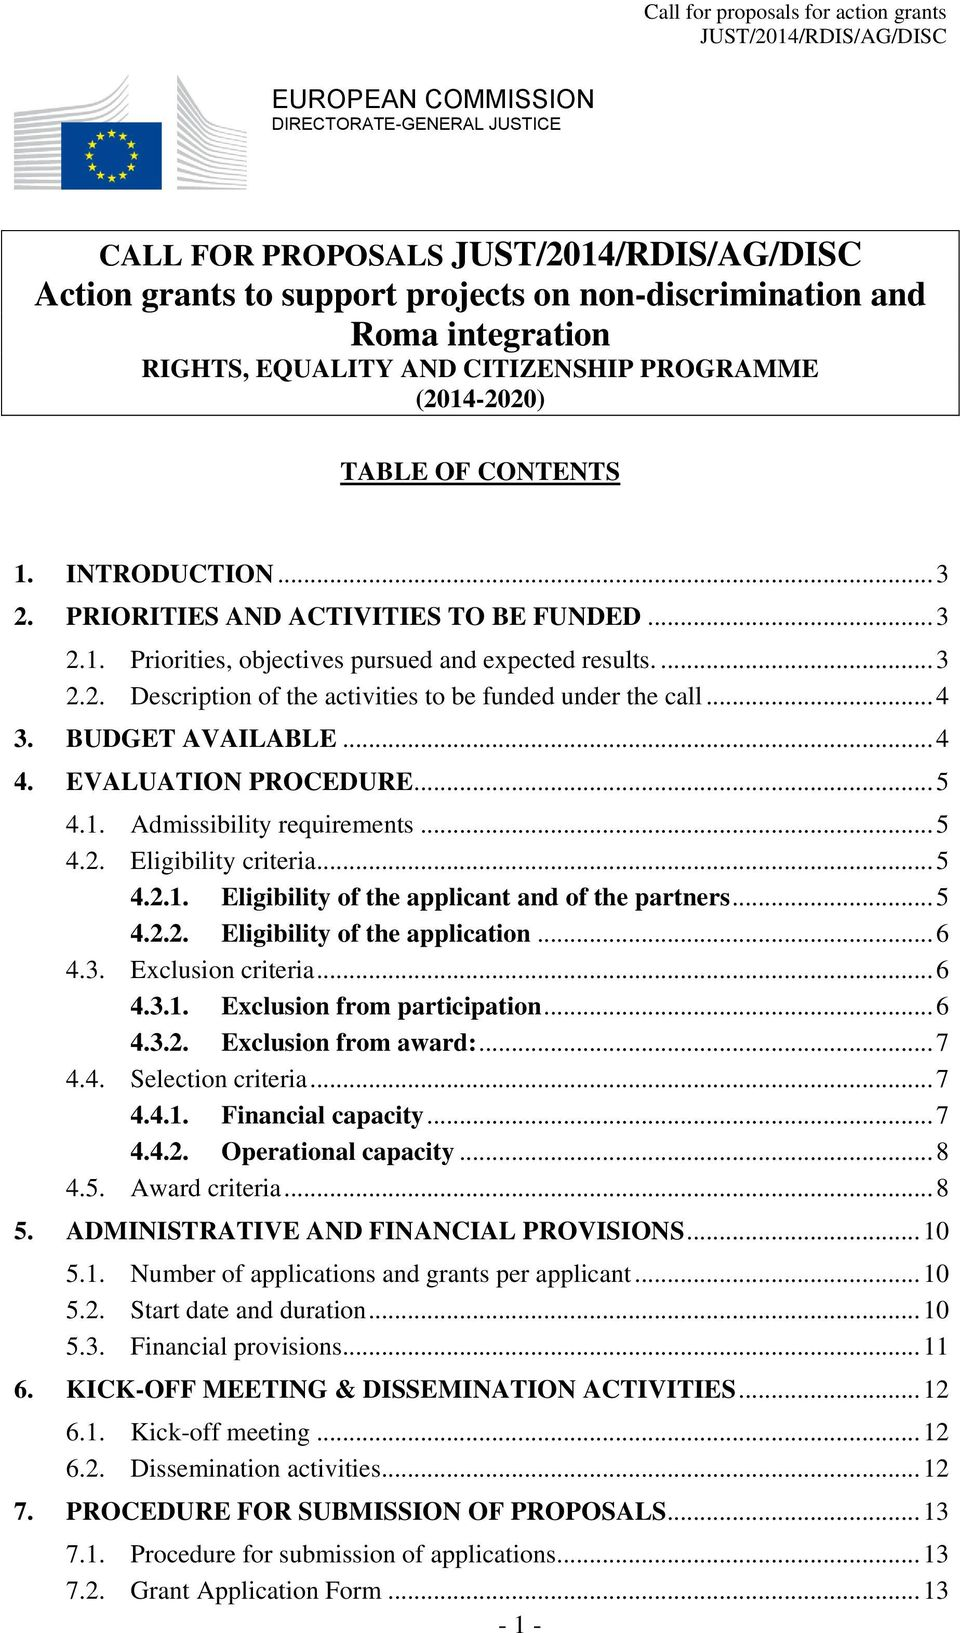 .. 4 3. BUDGET AVAILABLE... 4 4. EVALUATION PROCEDURE... 5 4.1. Admissibility requirements... 5 4.2. Eligibility criteria... 5 4.2.1. Eligibility of the applicant and of the partners... 5 4.2.2. Eligibility of the application.